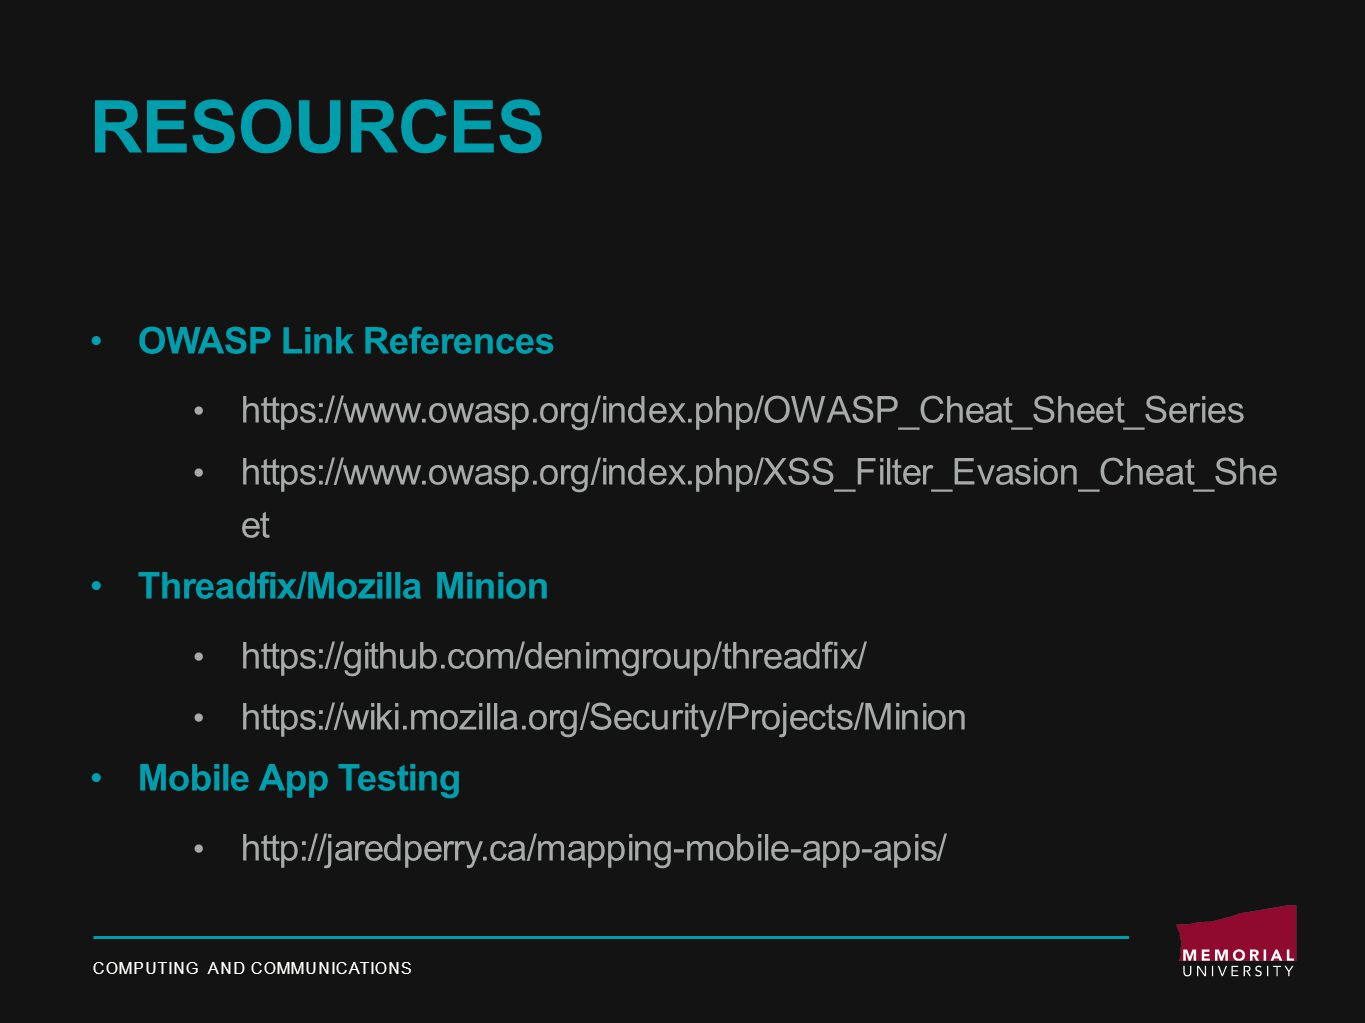 RESOURCES OWASP Link References https://www.owasp.org/index.php/OWASP_Cheat_Sheet_Series https://www.owasp.org/index.php/XSS_Filter_Evasion_Cheat_She et Threadfix/Mozilla Minion https://github.com/denimgroup/threadfix/ https://wiki.mozilla.org/Security/Projects/Minion Mobile App Testing http://jaredperry.ca/mapping-mobile-app-apis/ COMPUTING AND COMMUNICATIONS